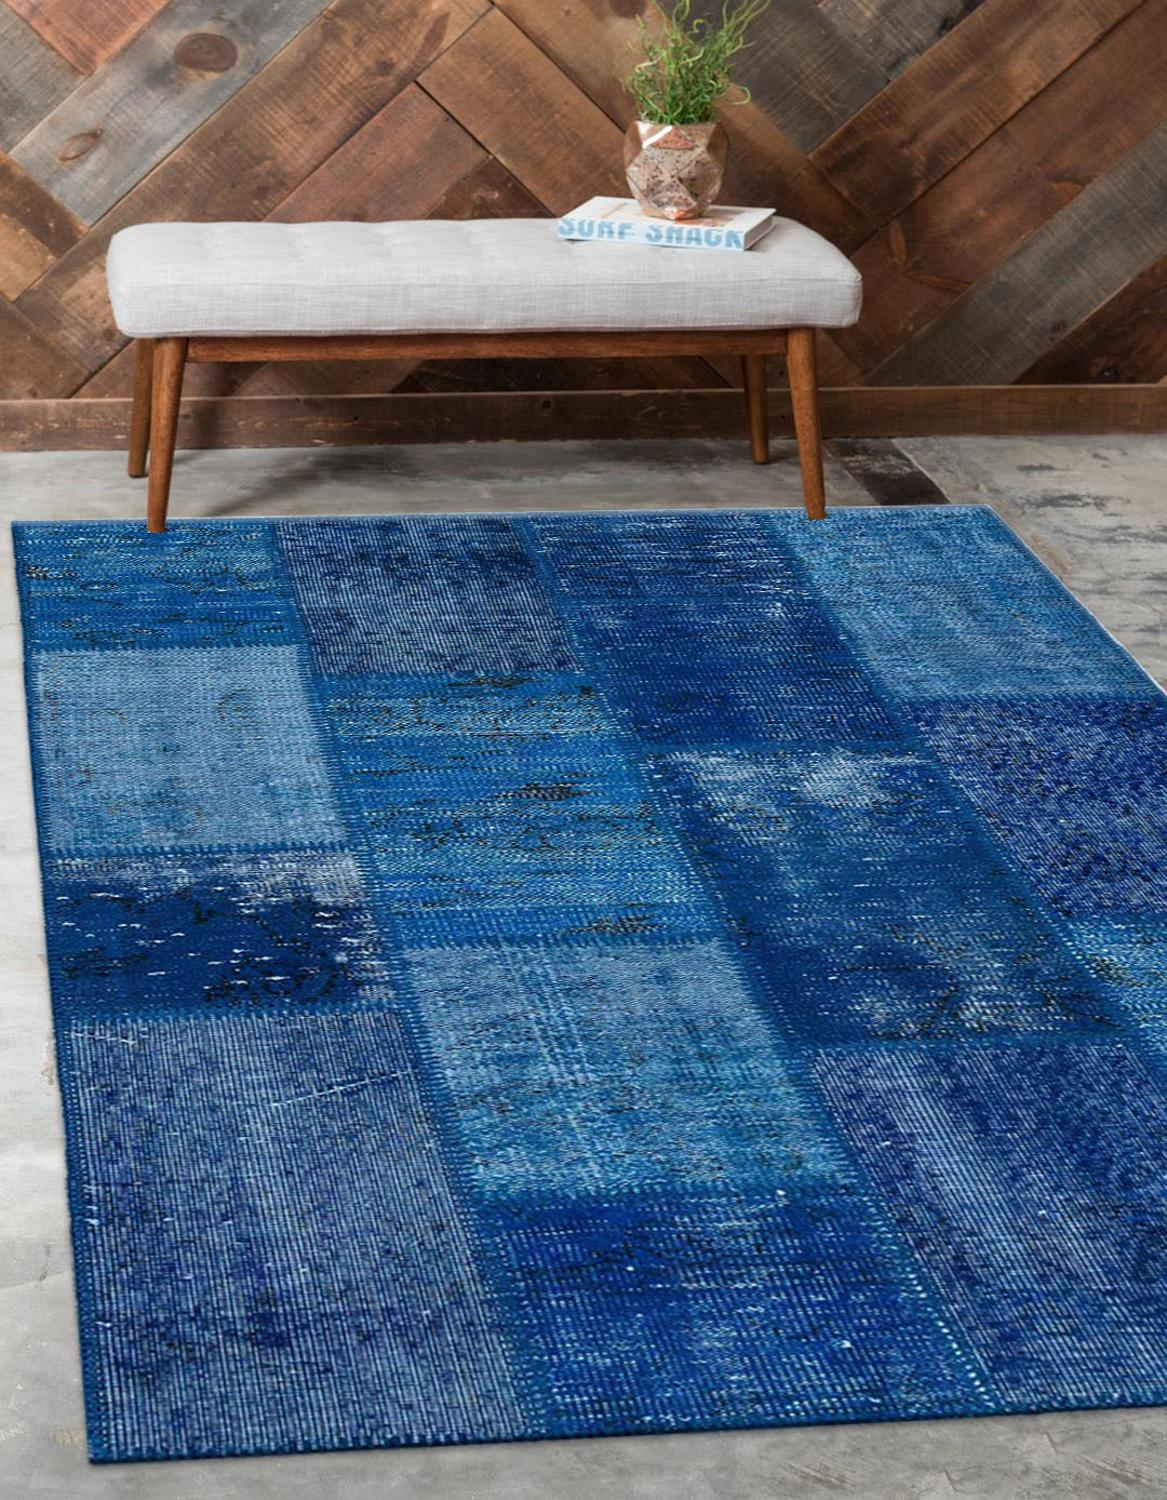 Else Blue Anatolian Patchwork Rug Turkish Handmade Organic Area Rug Decorative Home Decor Wool Patchwork Rug Carpet